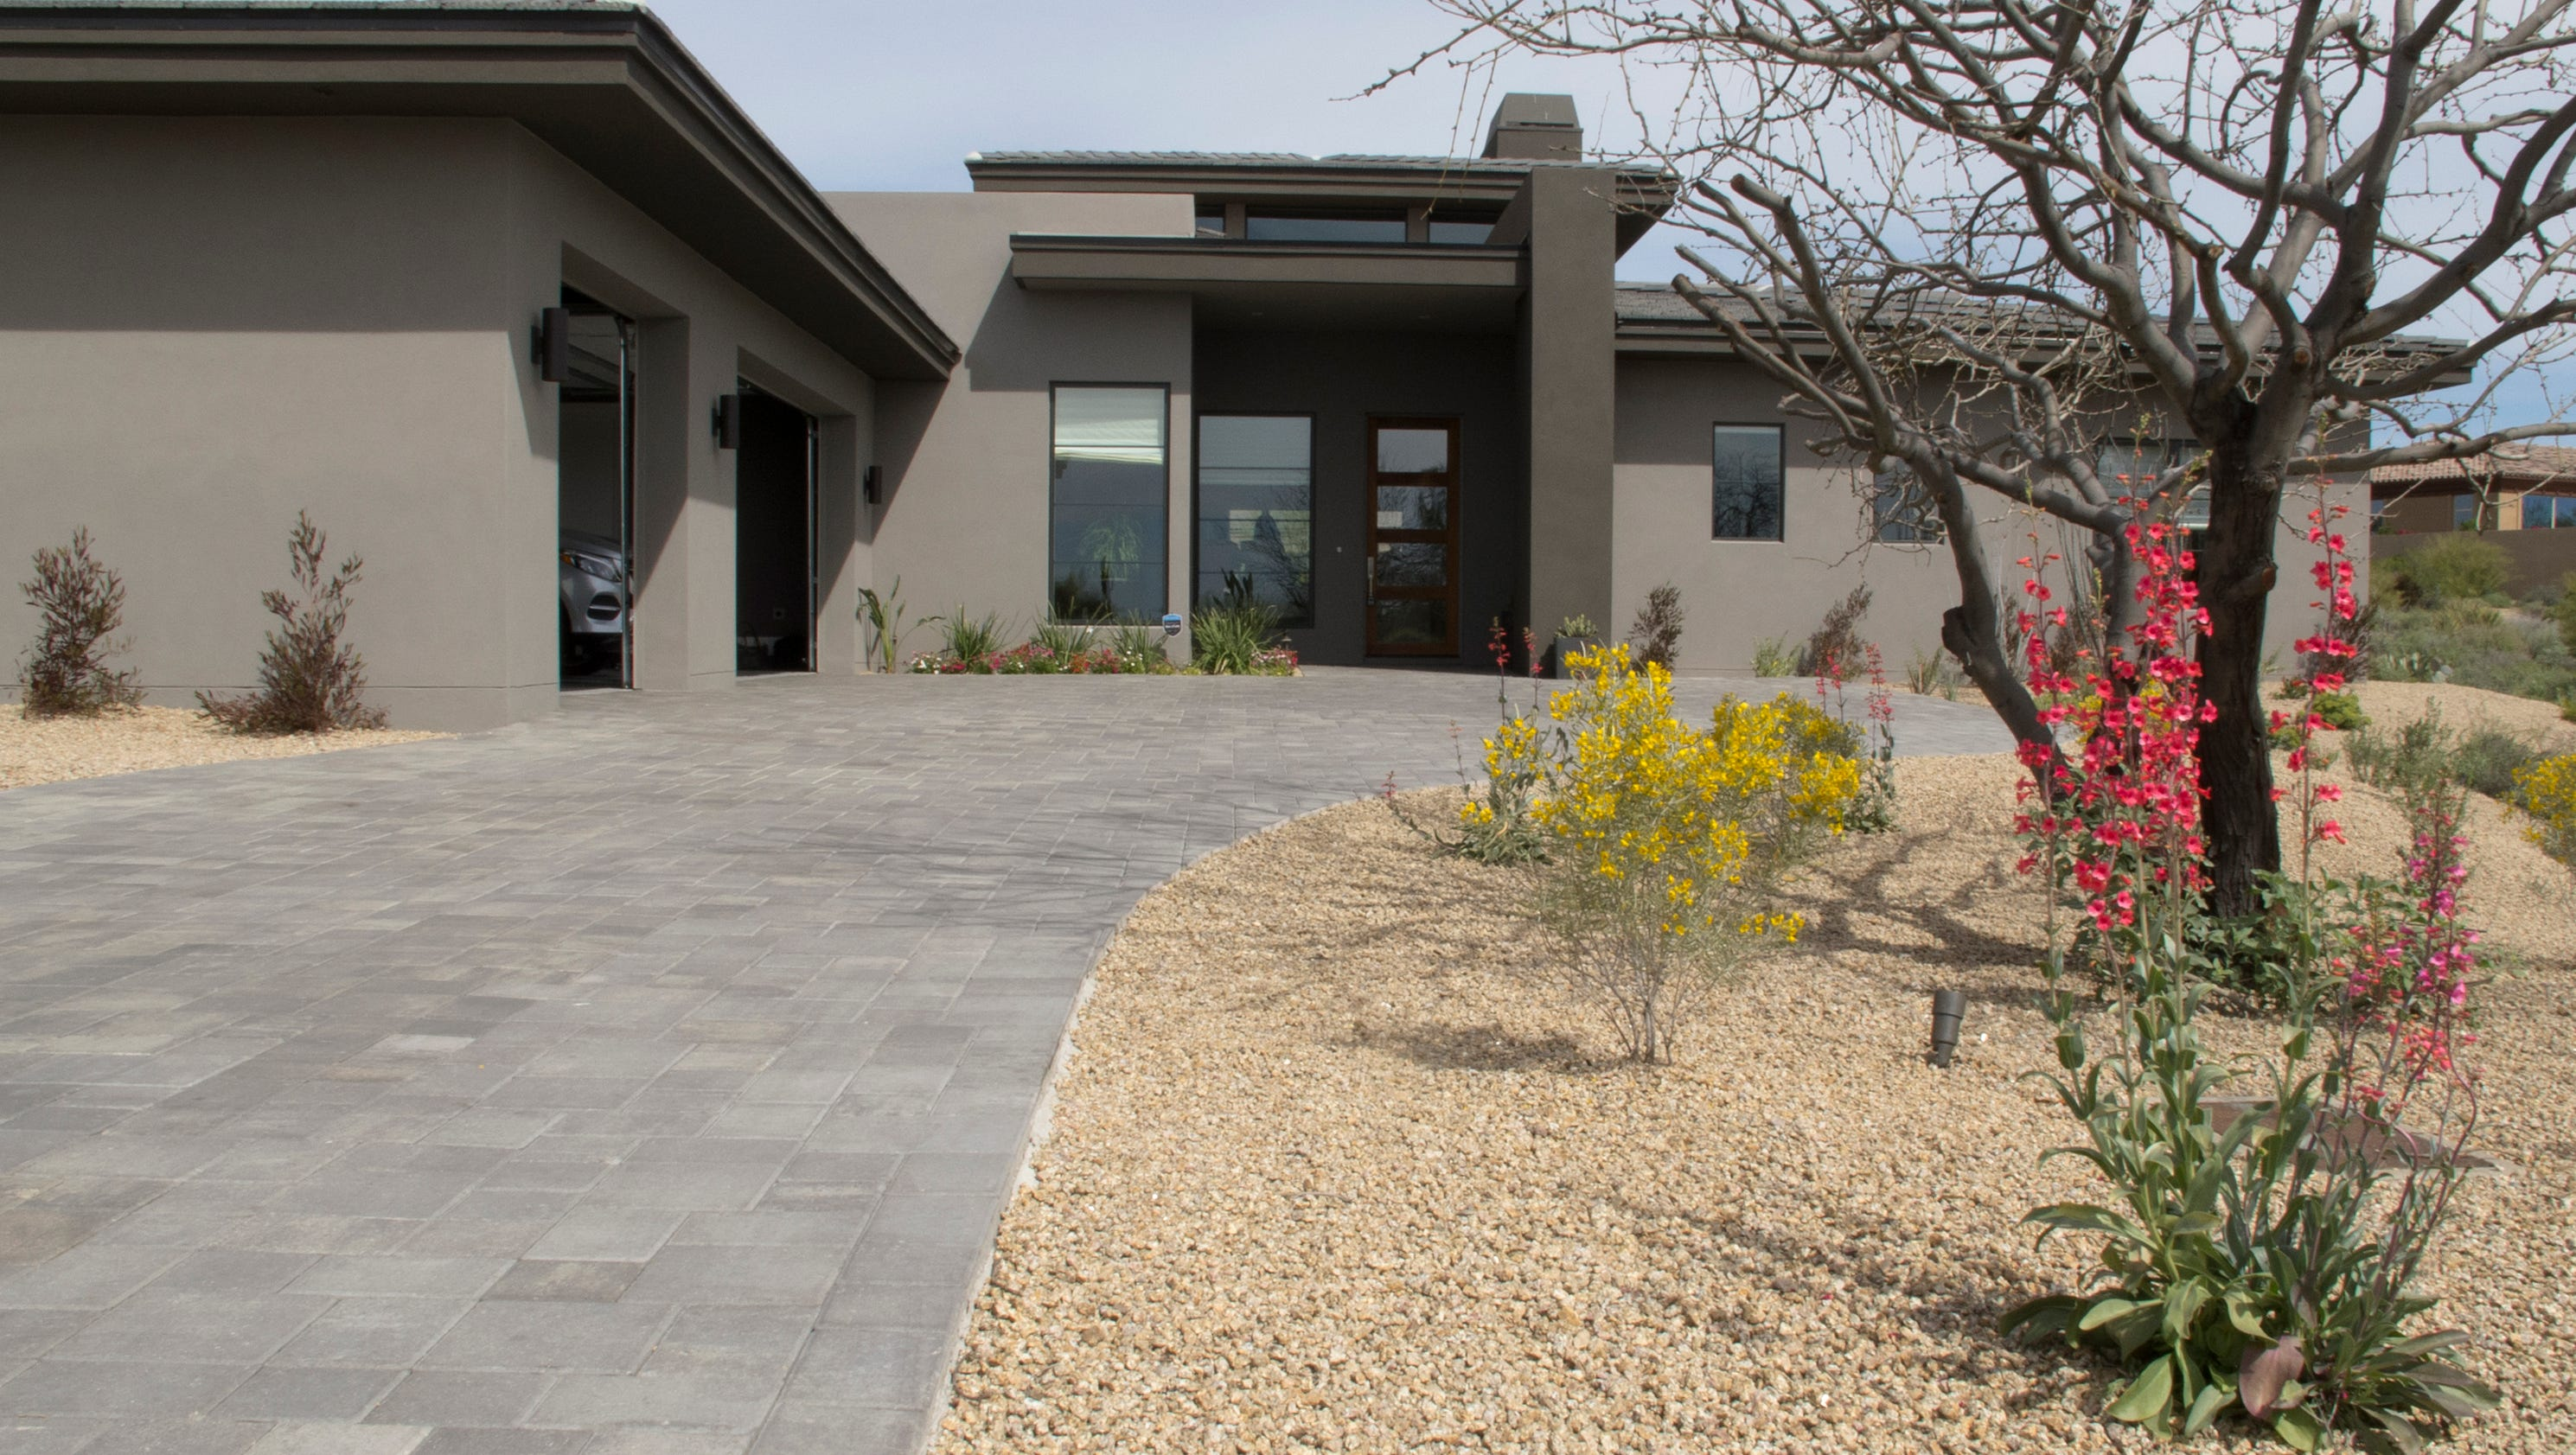 Winner of hgtv smart home in north scottsdale puts it on for Hgtv smart home winners where are they now